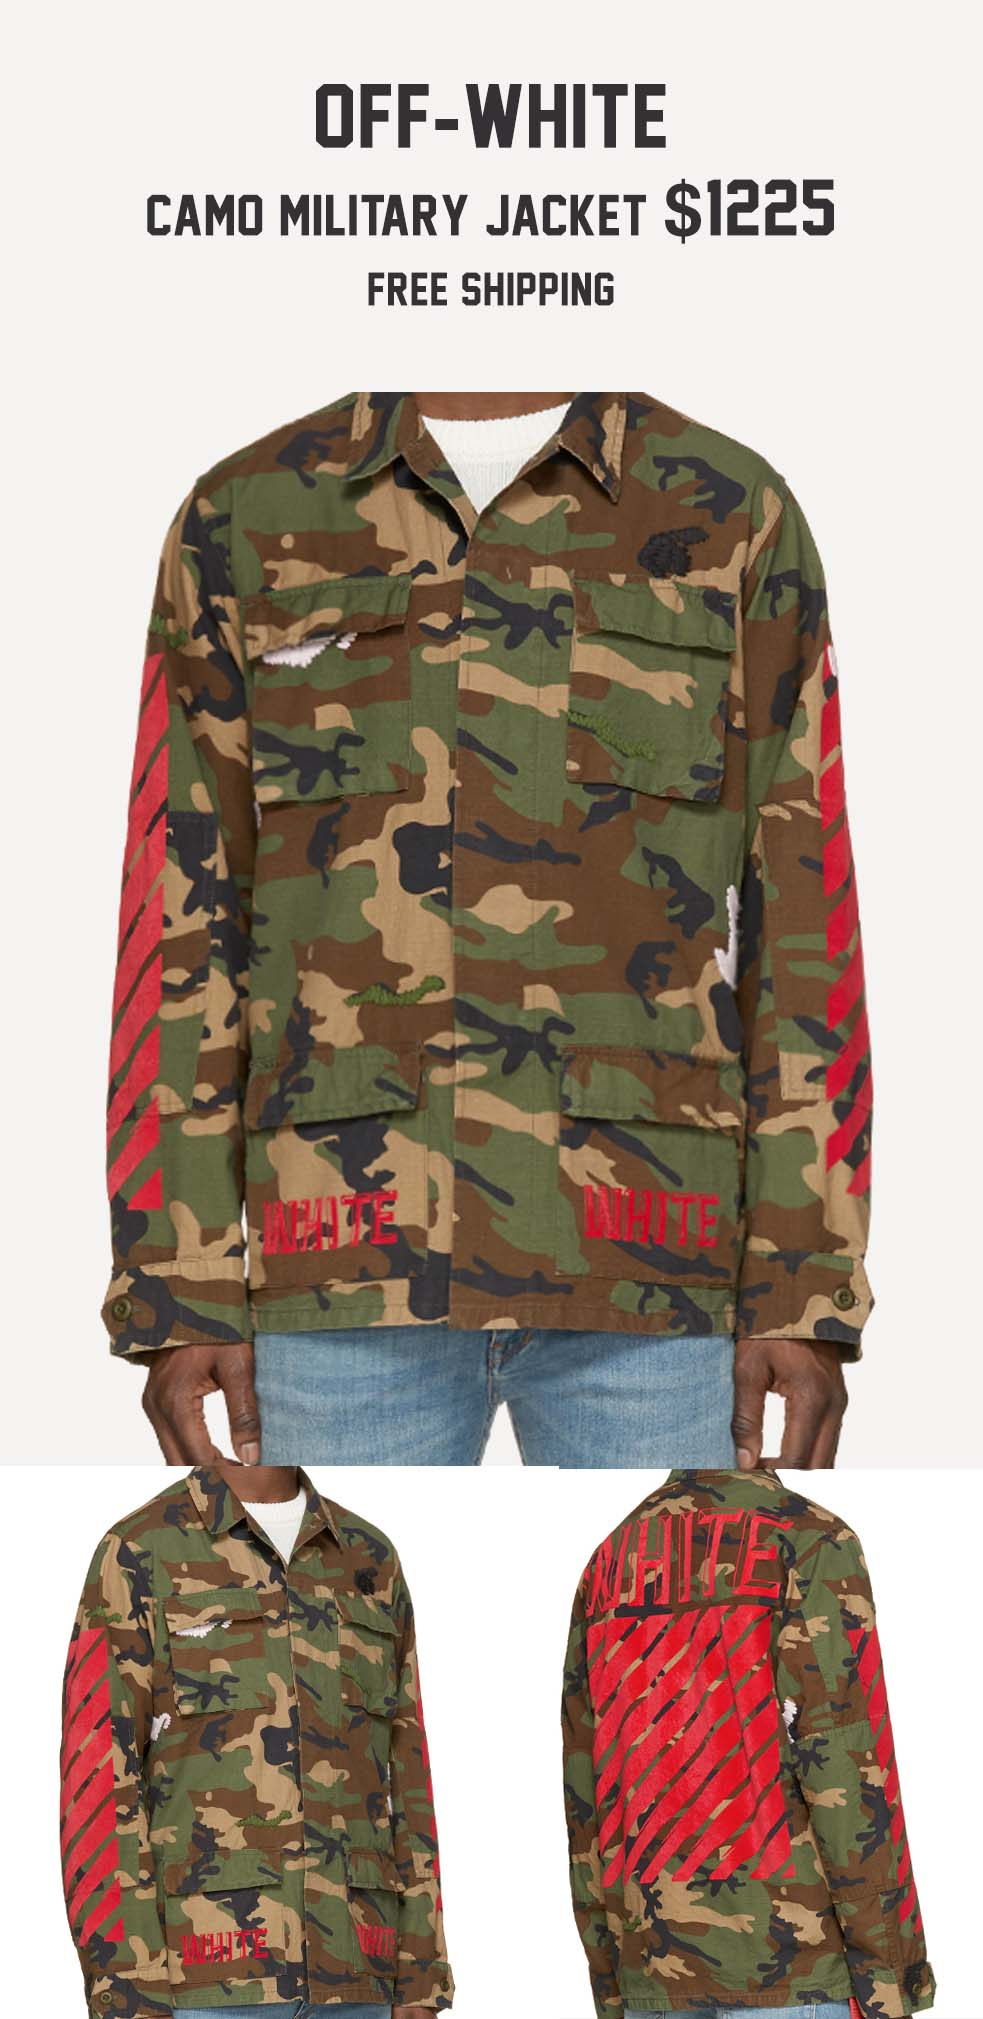 Stefan's Head - Fall Jackets Collection - Off White Camo Military Jacket